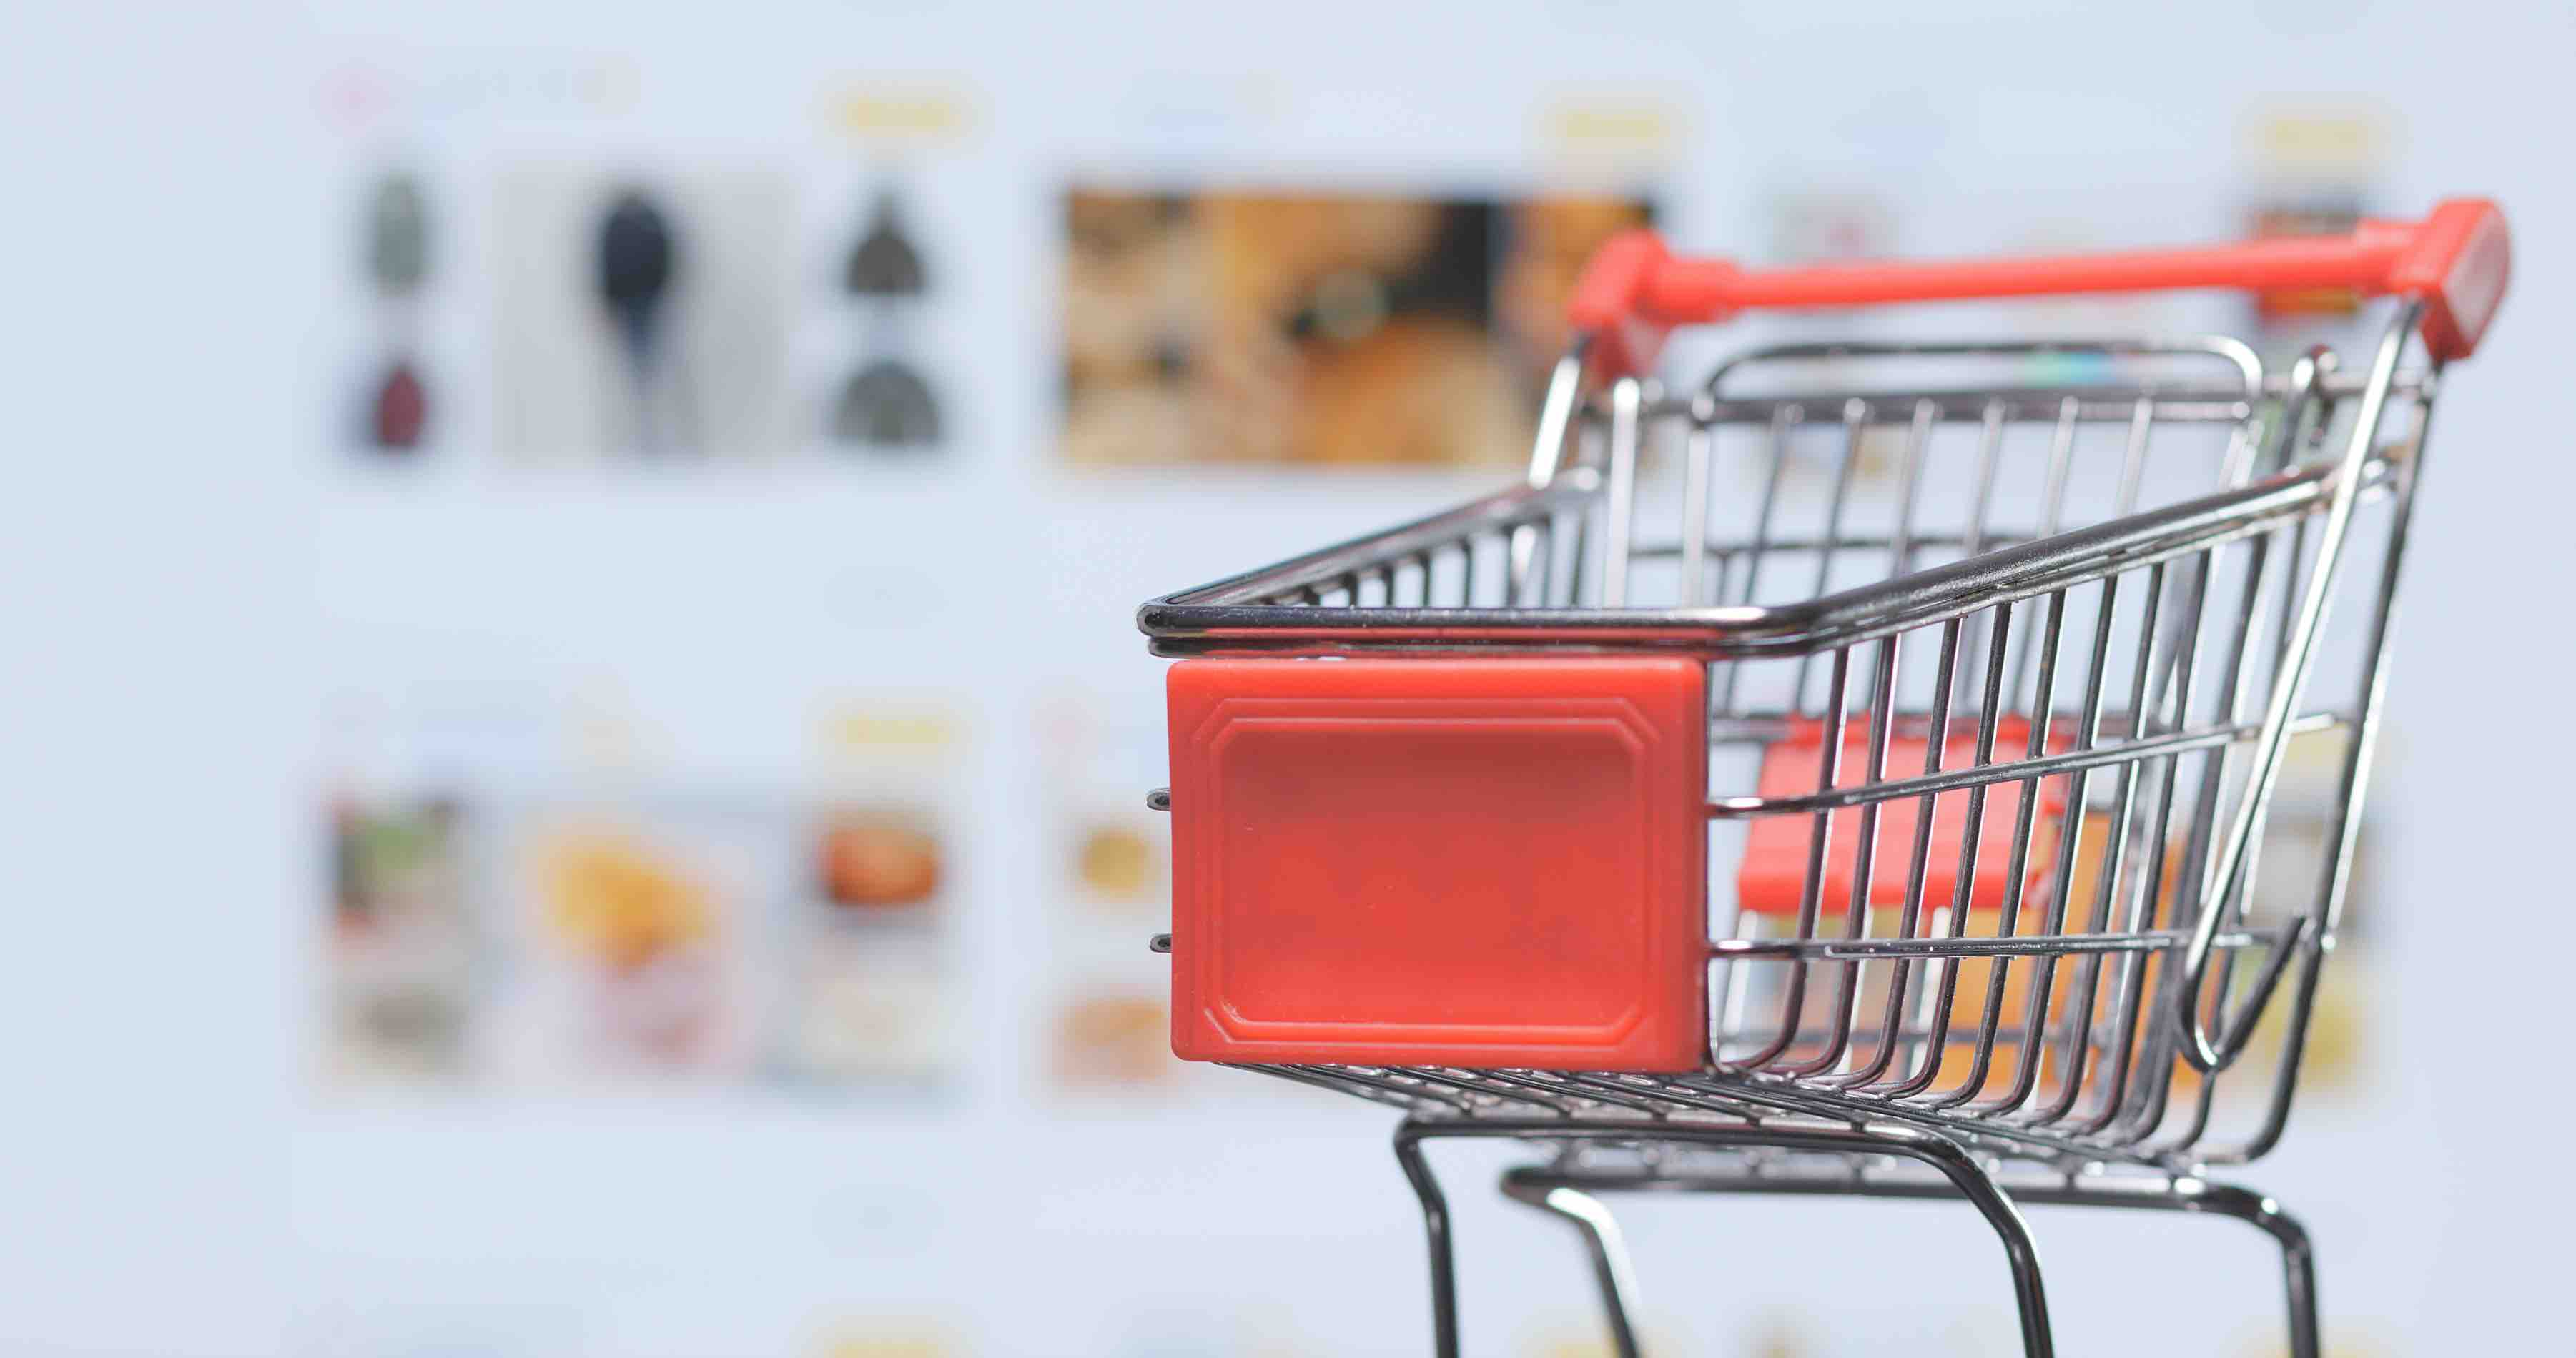 cart abandonment, online shopping cart, small business, small business owners, grow onkline store, stop cart abandonment, holidays 2020, marketing tips, business tips